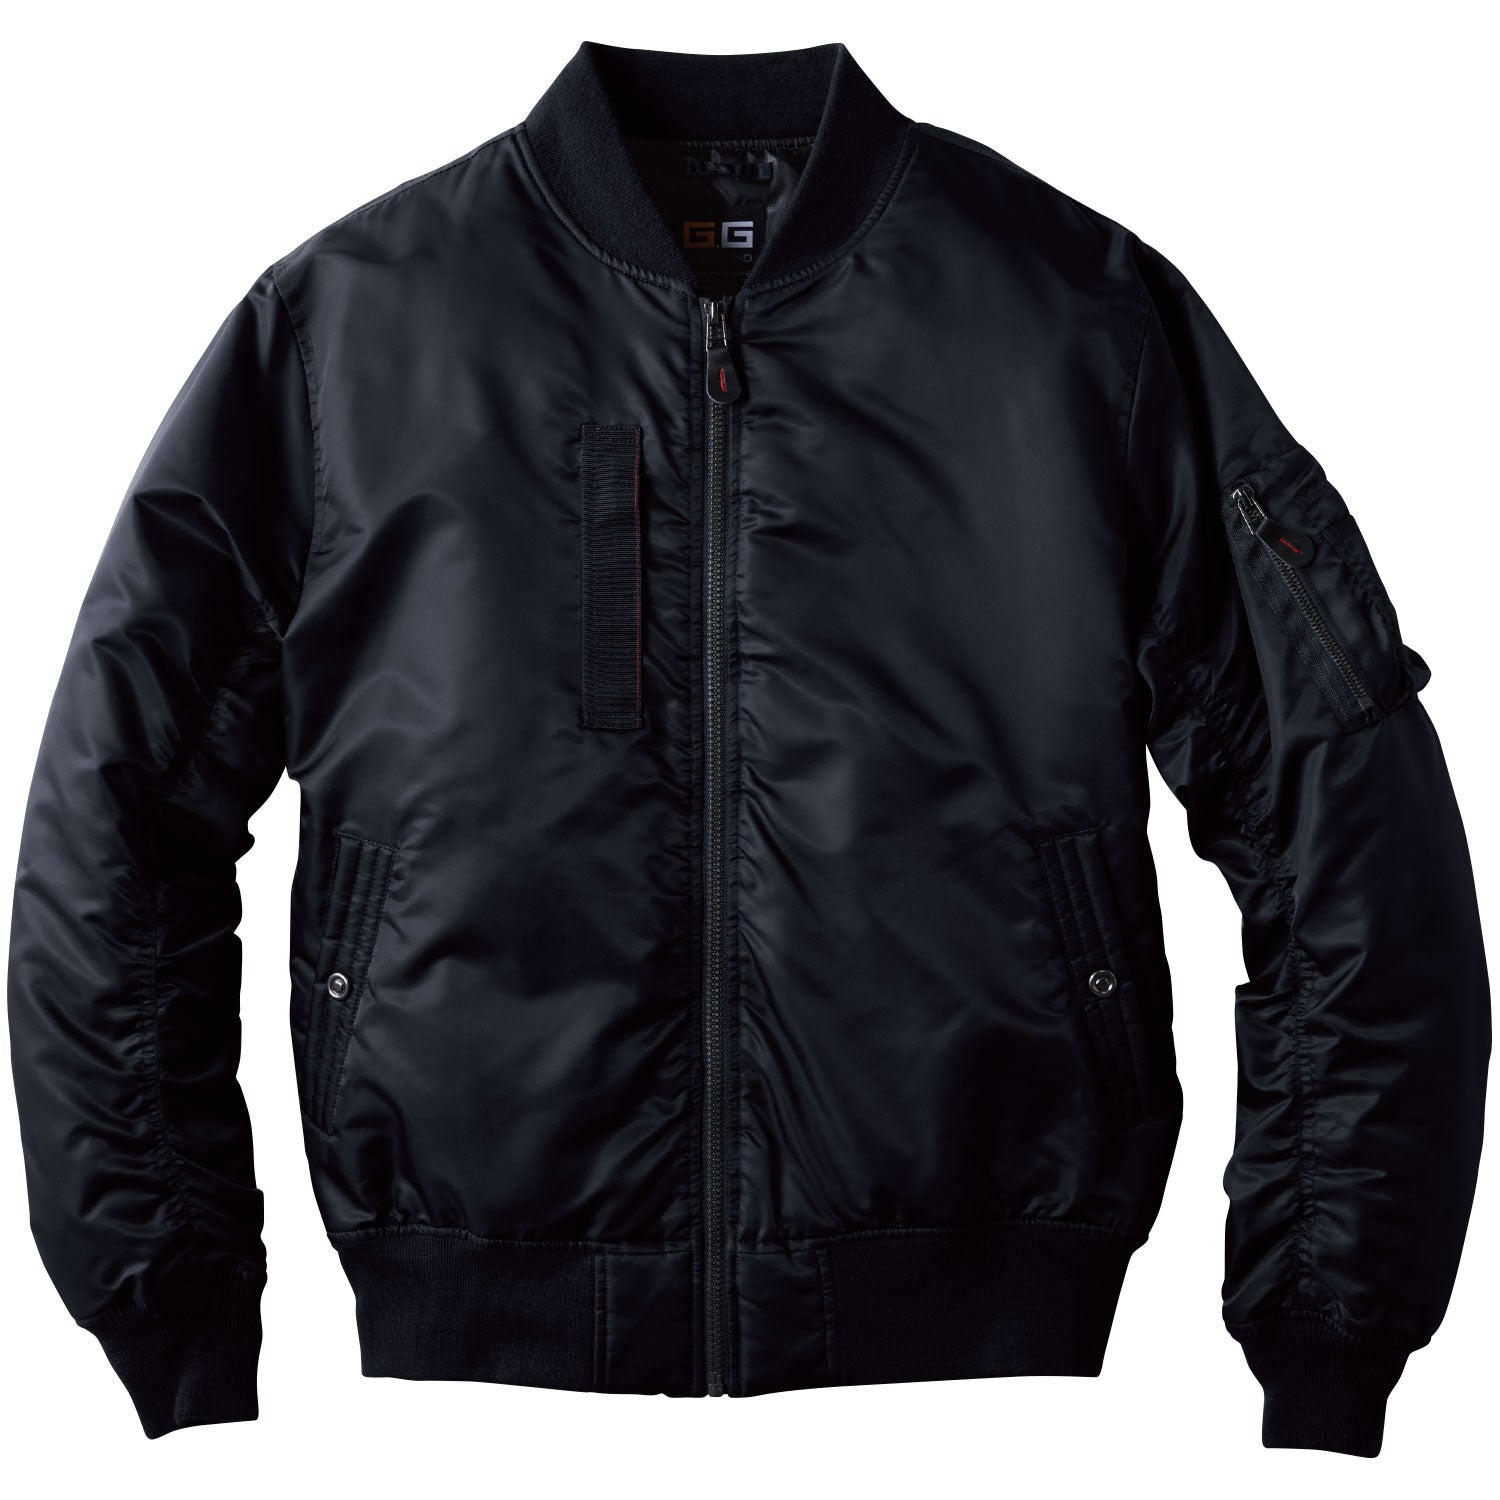 SOWA 0014-00 Flight Blouson